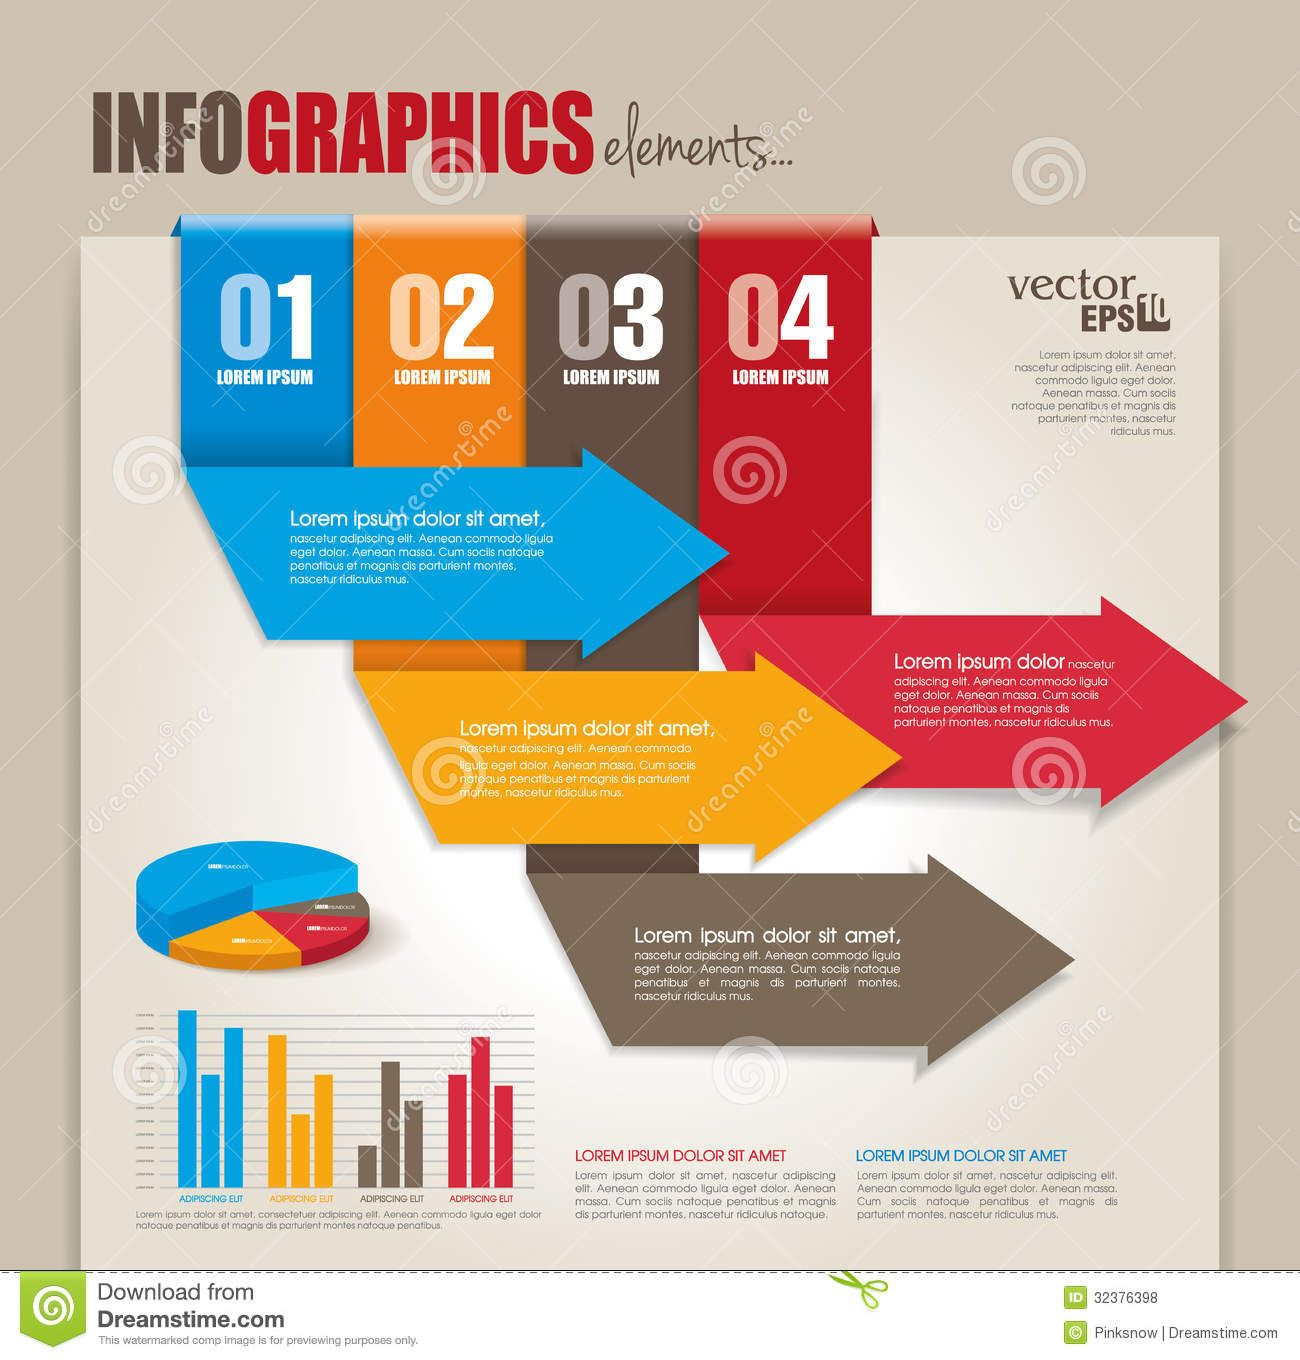 17 Best images about infographics on Pinterest | Royalty free ...